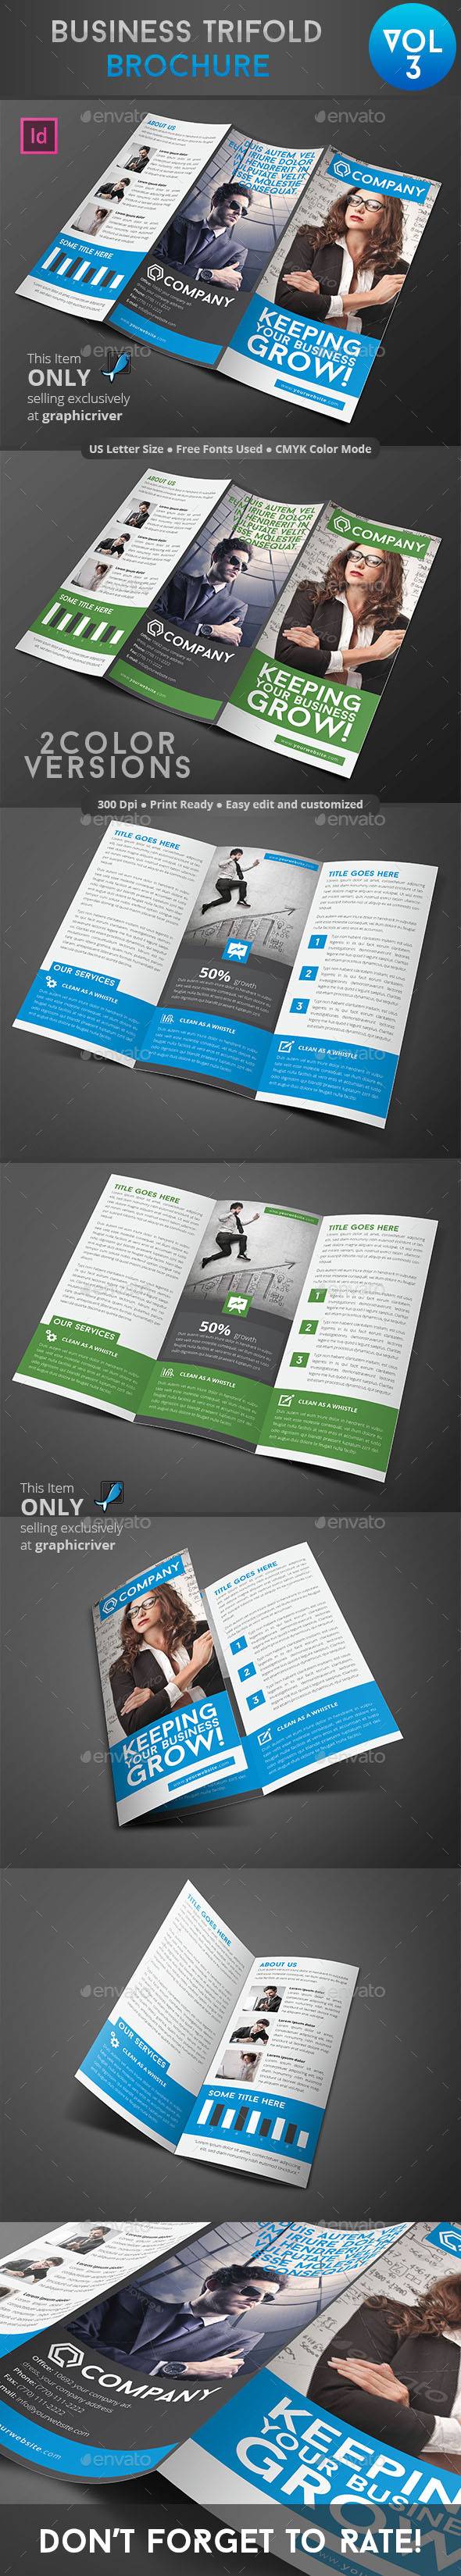 GraphicRiver Business Trifold Brochure Vol 3 9011249